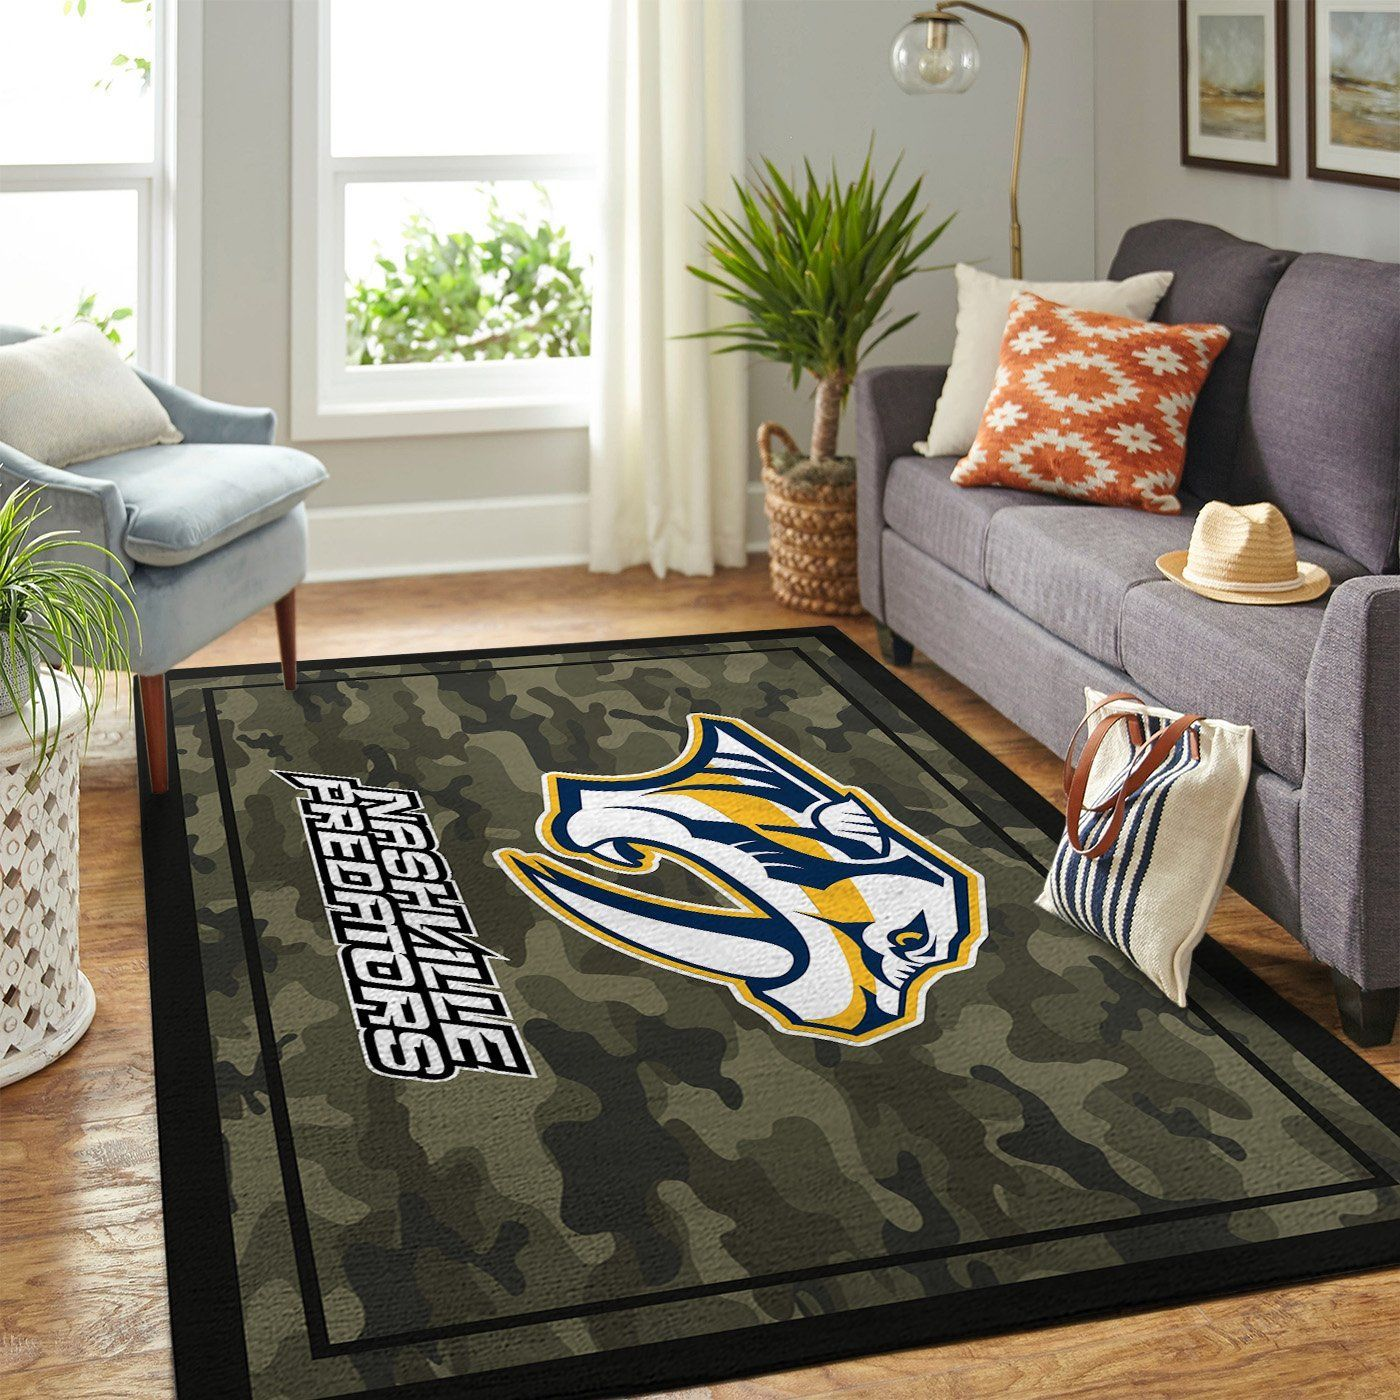 Amazon Nashville Predators Living Room Area No4002 Rug